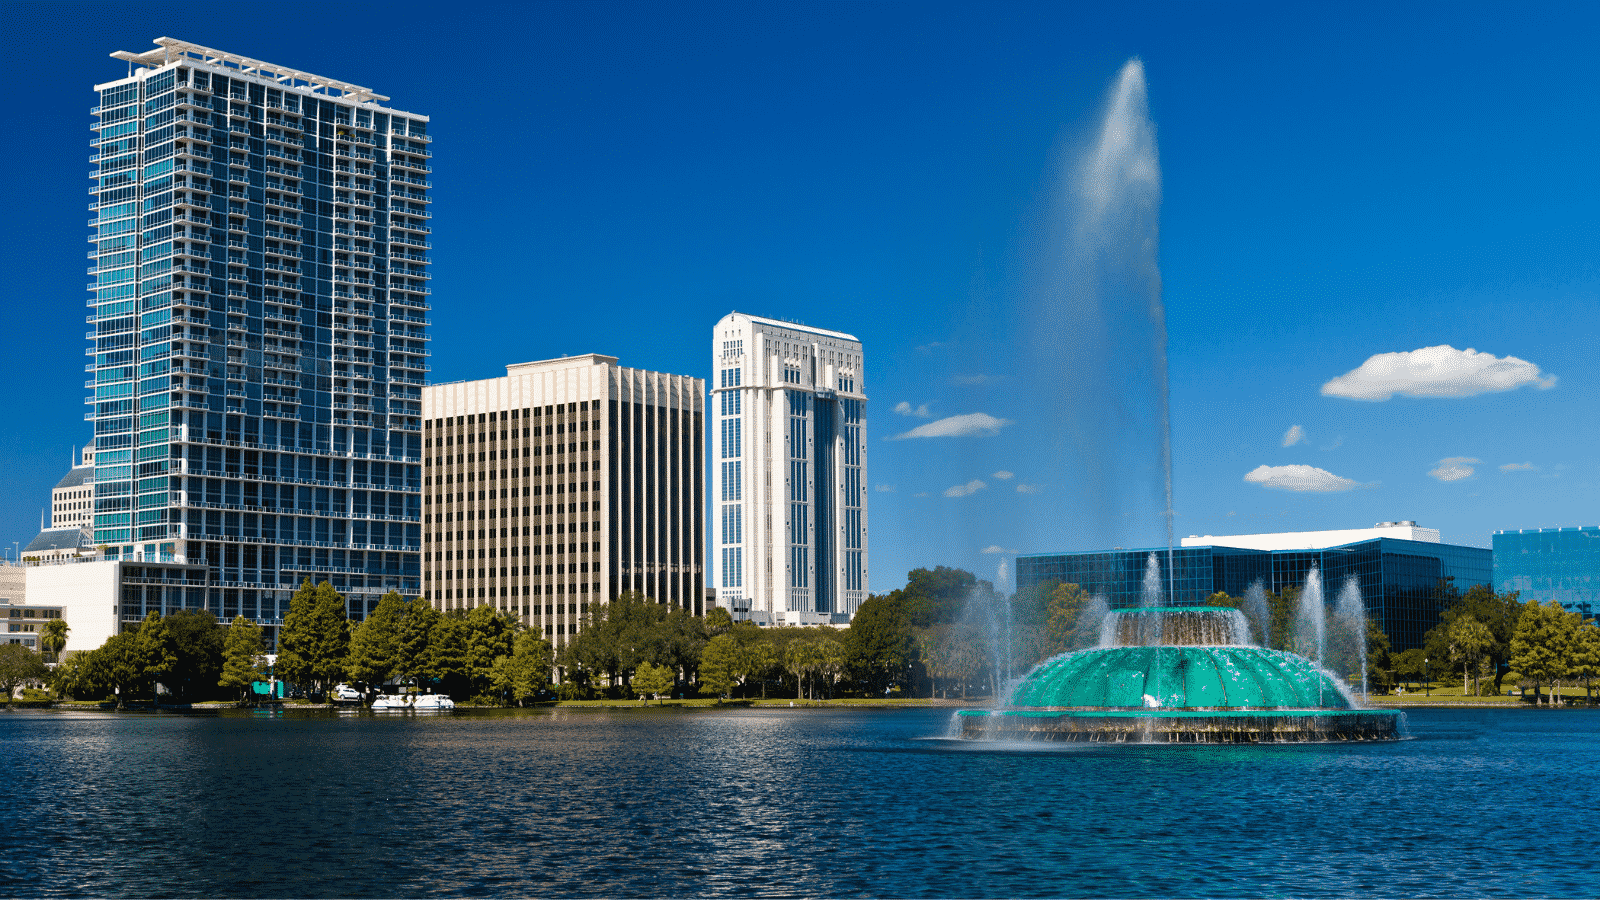 Downtown Orlando Lake Eola during the day